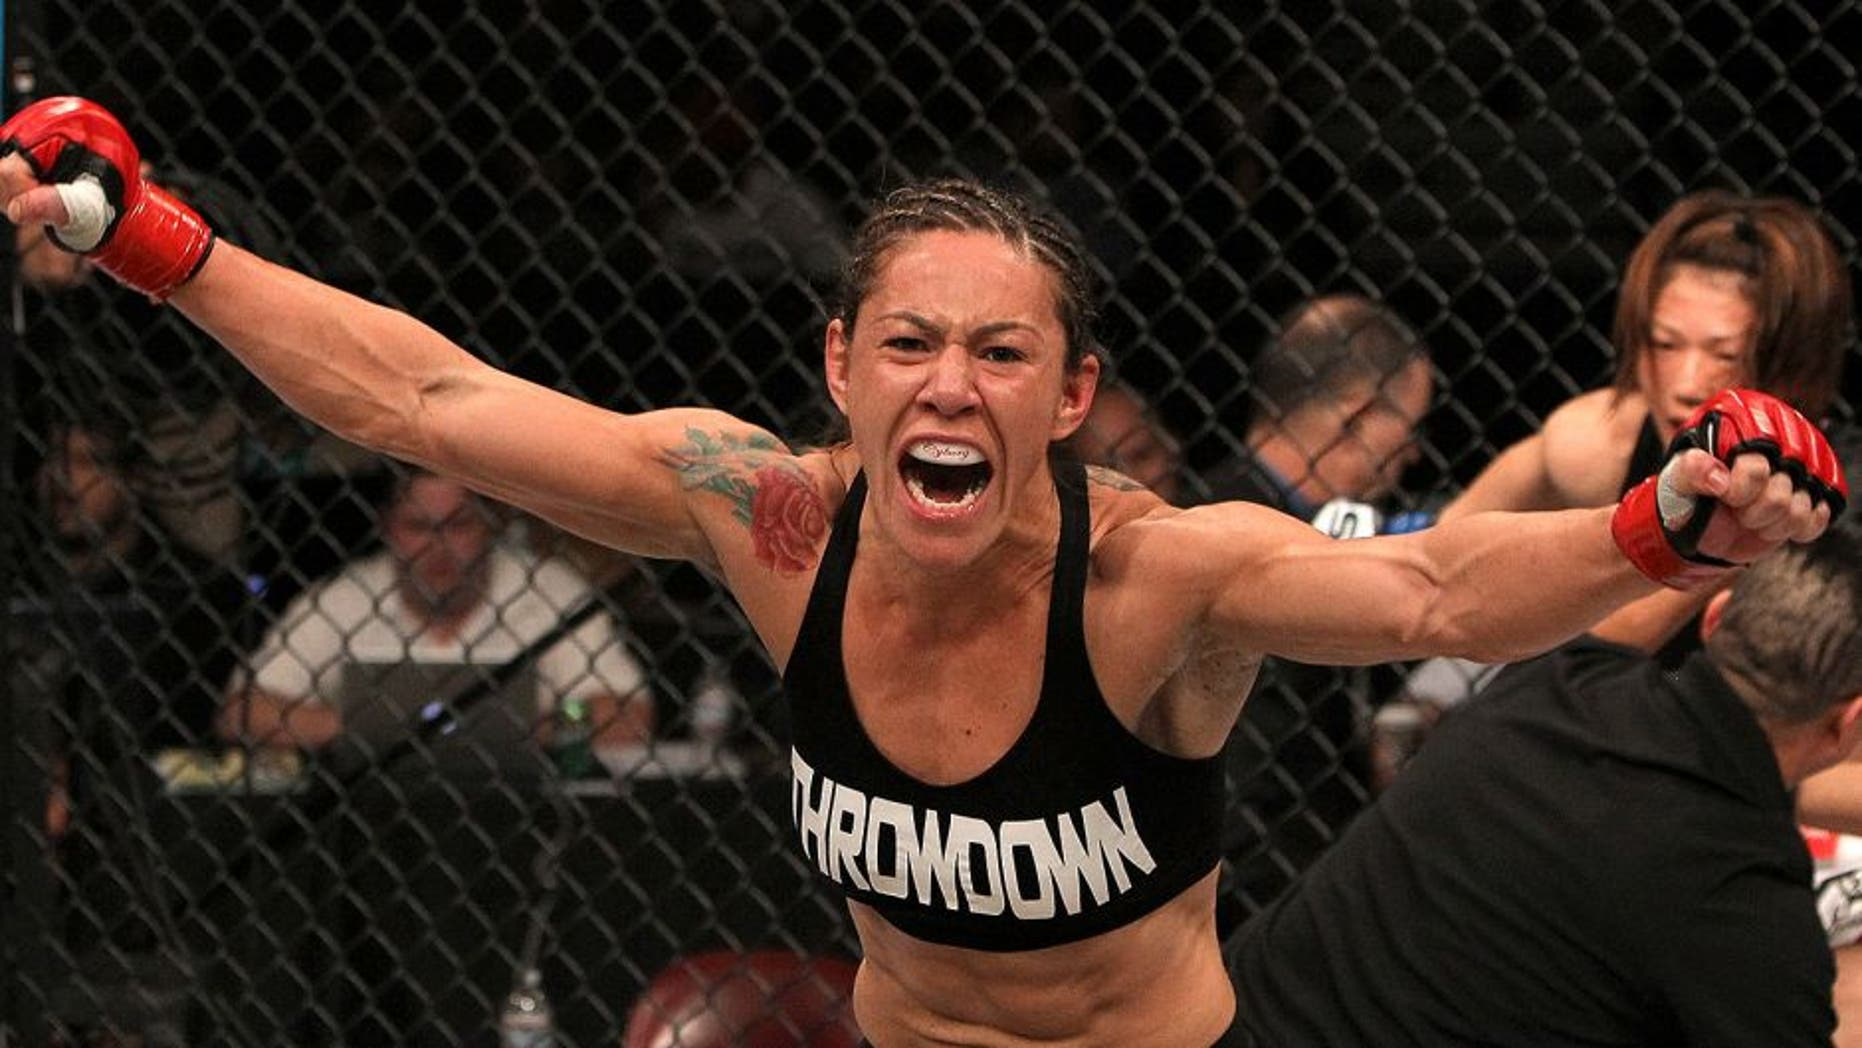 """SAN DIEGO - DECEMBER 17: Cris """"Cyborg"""" Santos reacts to her knockout victory over Hiroko Yamanaka during the Strikeforce event at the Valley View Casino Center on December 17, 2011 in San Diego, California. (Photo by Josh Hedges/Forza LLC/Forza LLC via Getty Images)"""